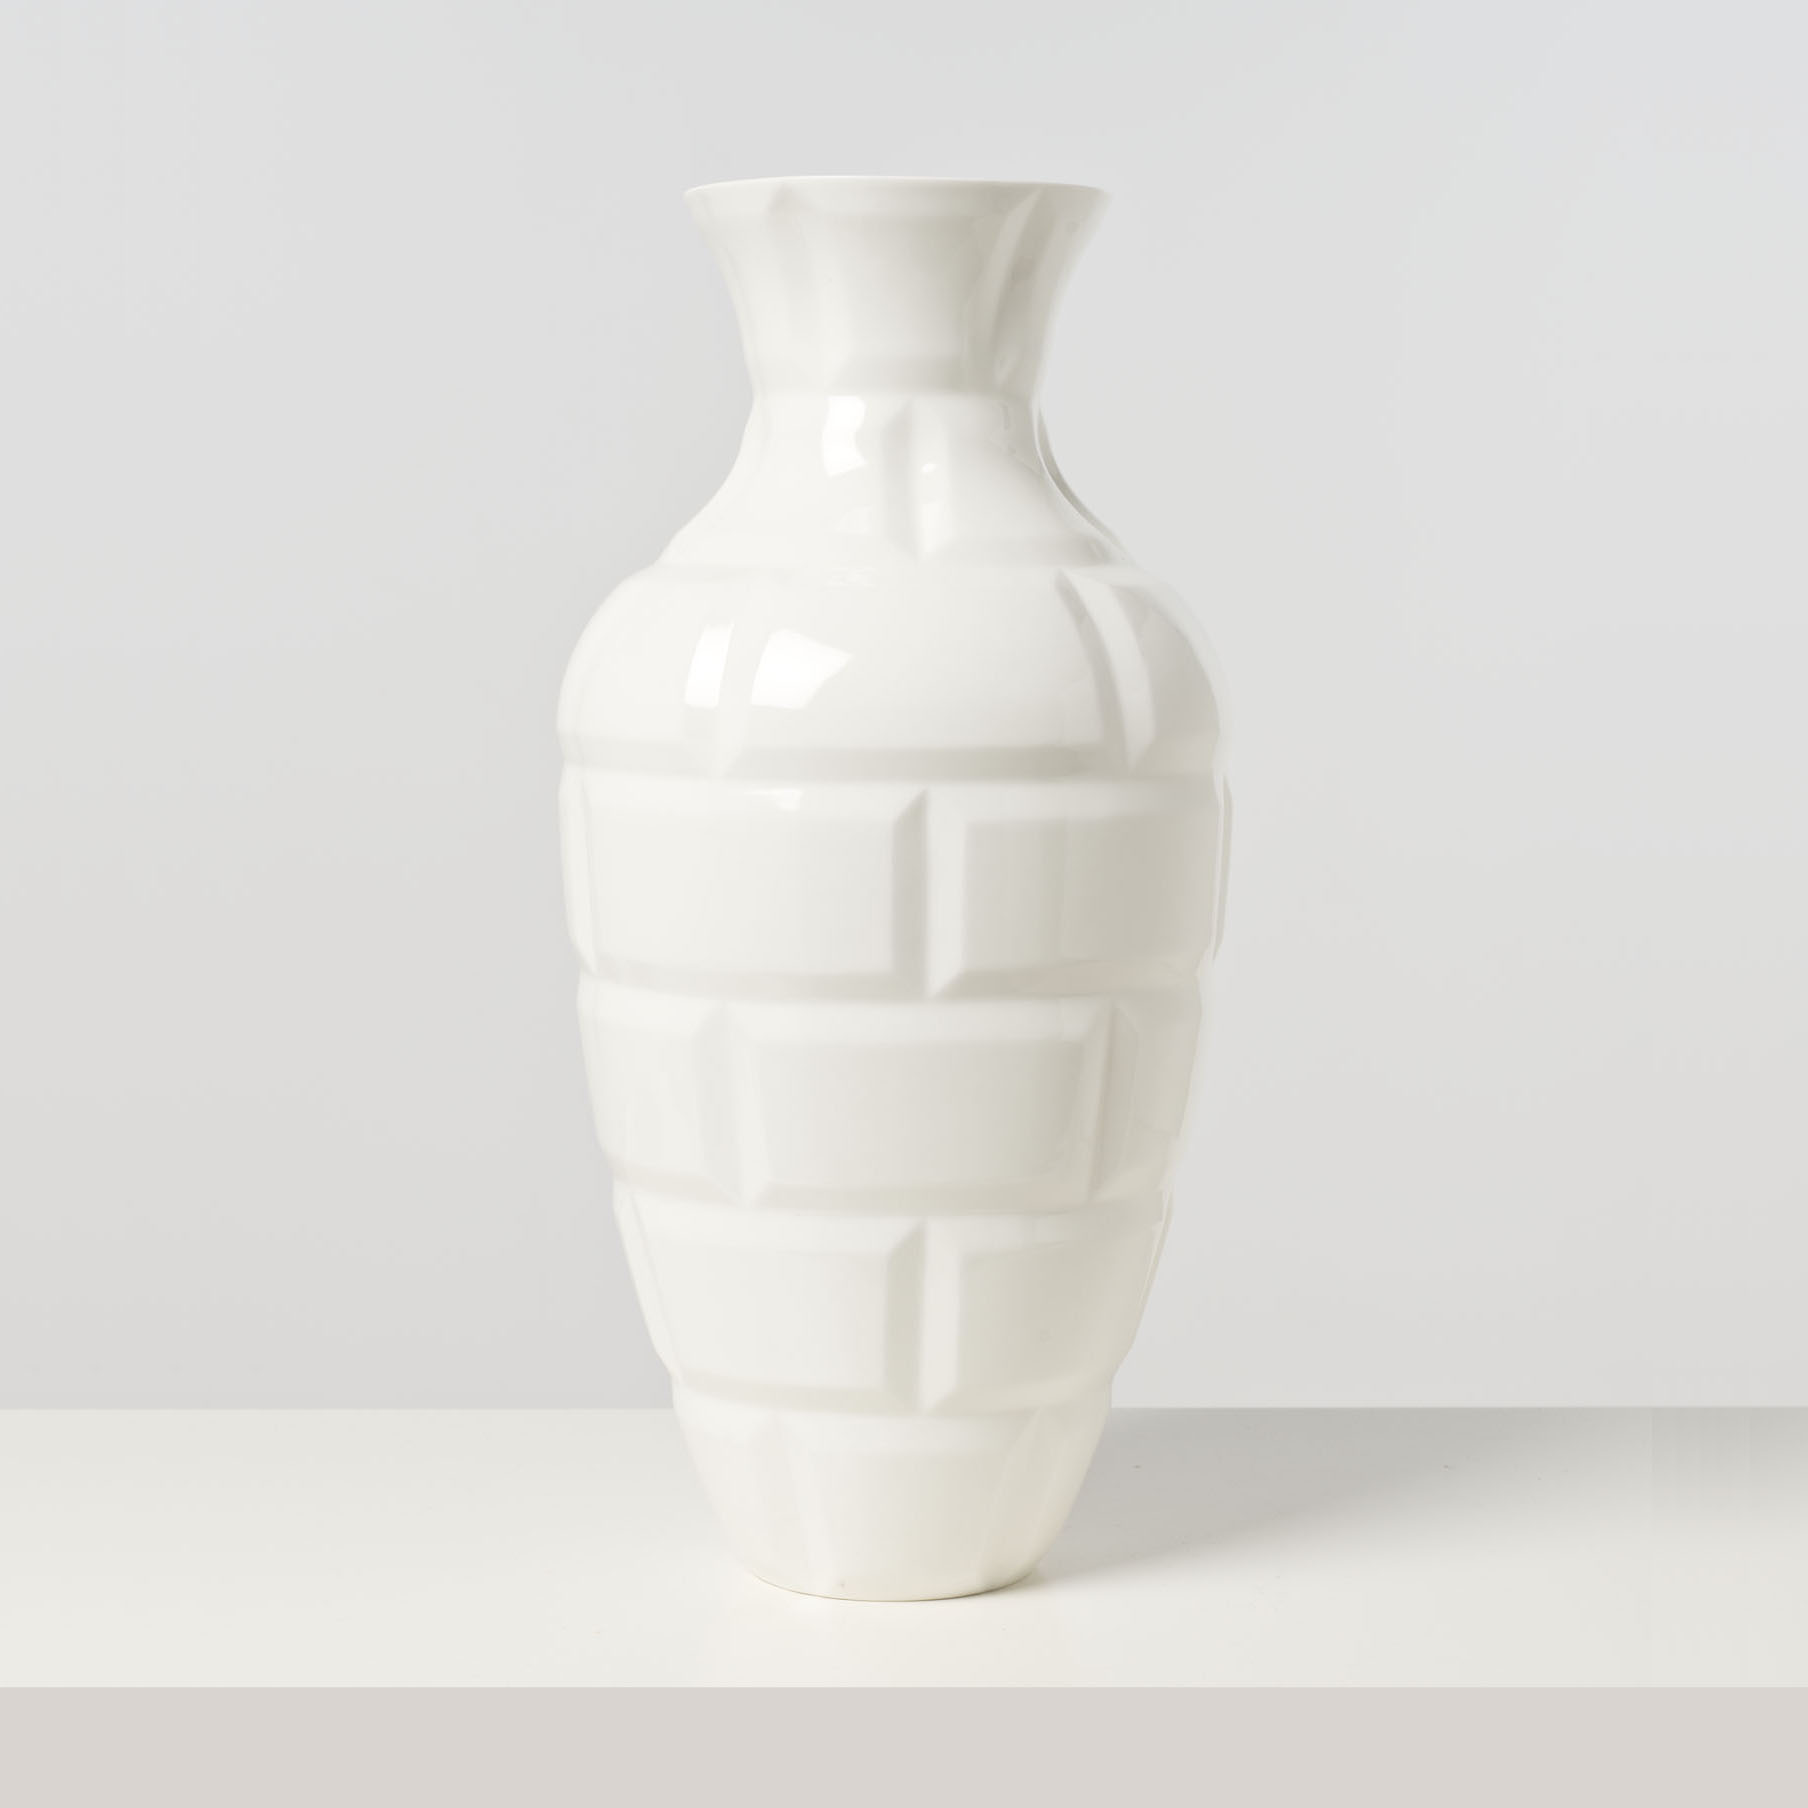 Naoto Fukasawa 1956 Metro Vase Porcelaine De Sevres Date De Creation Lot 80 Limited Edition Chez Piasa Auction Fr